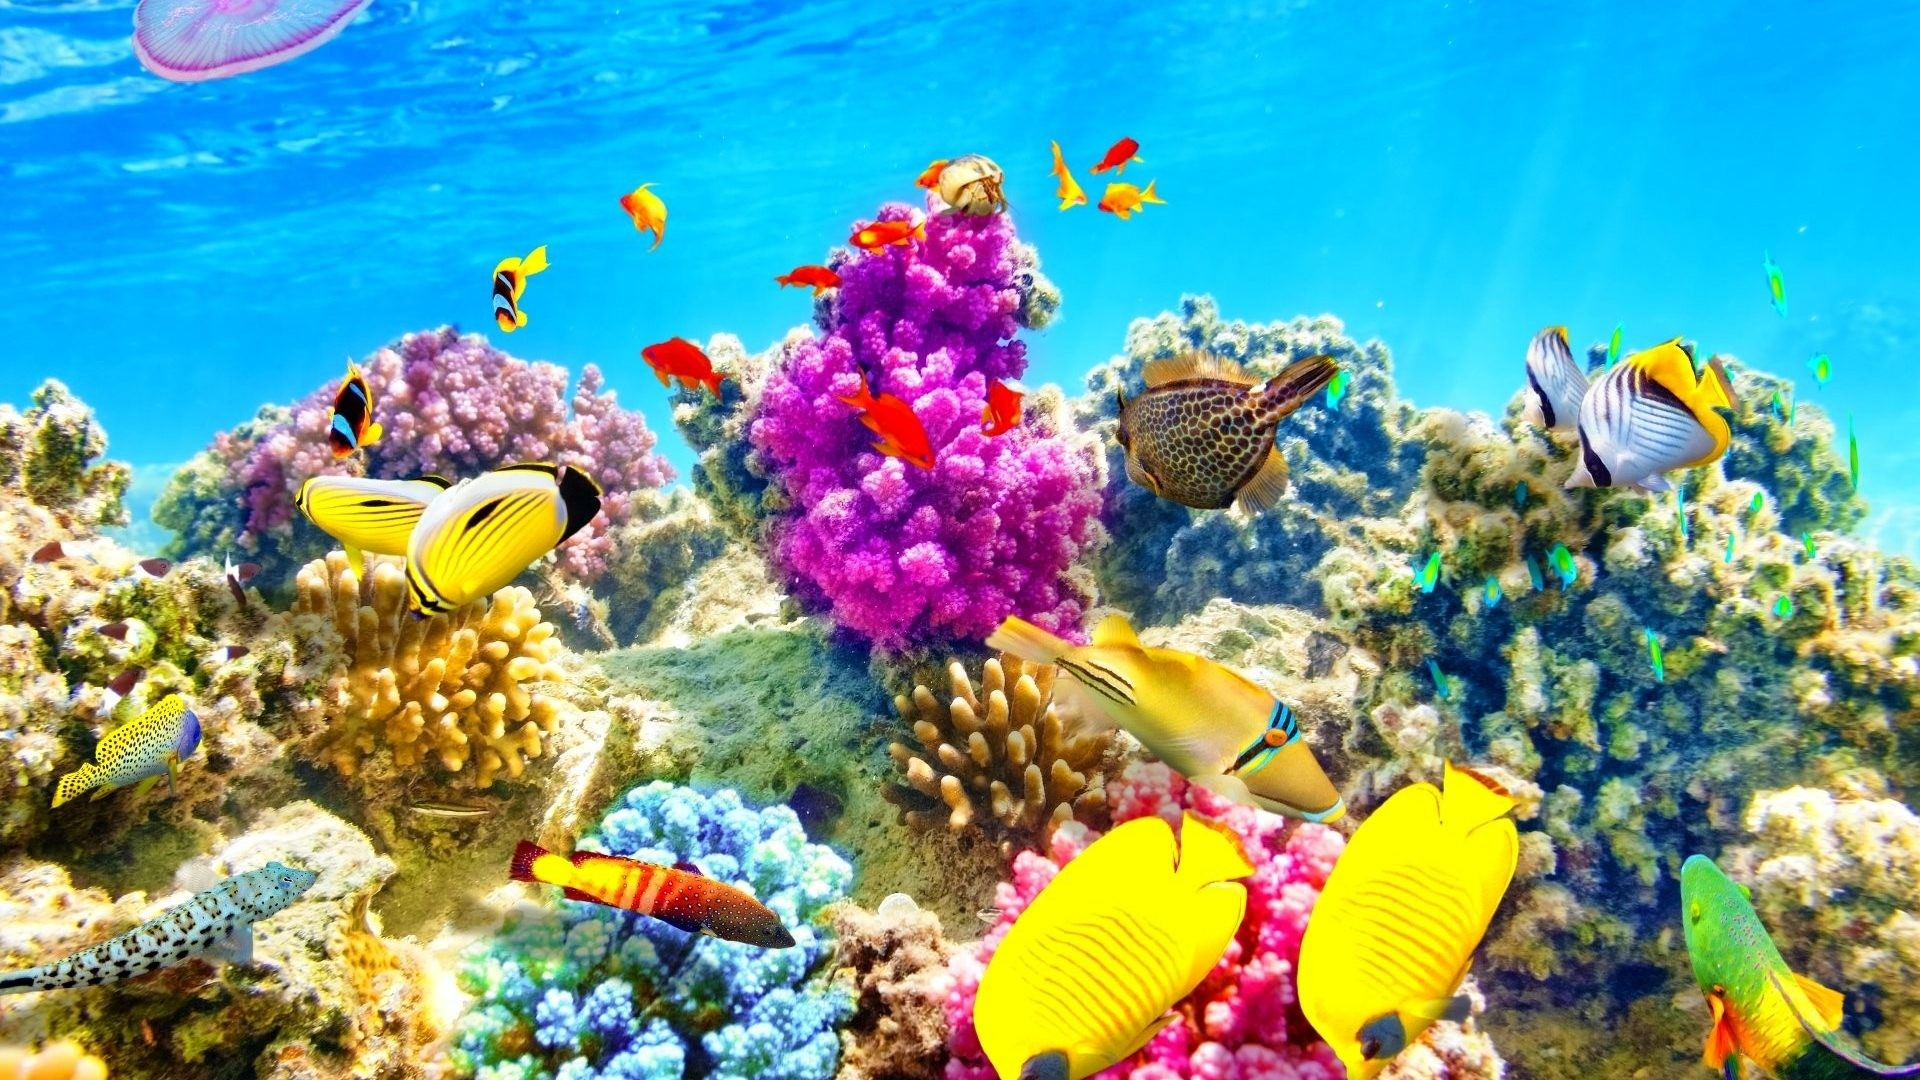 Res: 1920x1080, Fishes - Sealife Underwater Fishes Nature Fish Sea Ocean Desktop Backgrounds  Tropical for HD 16: